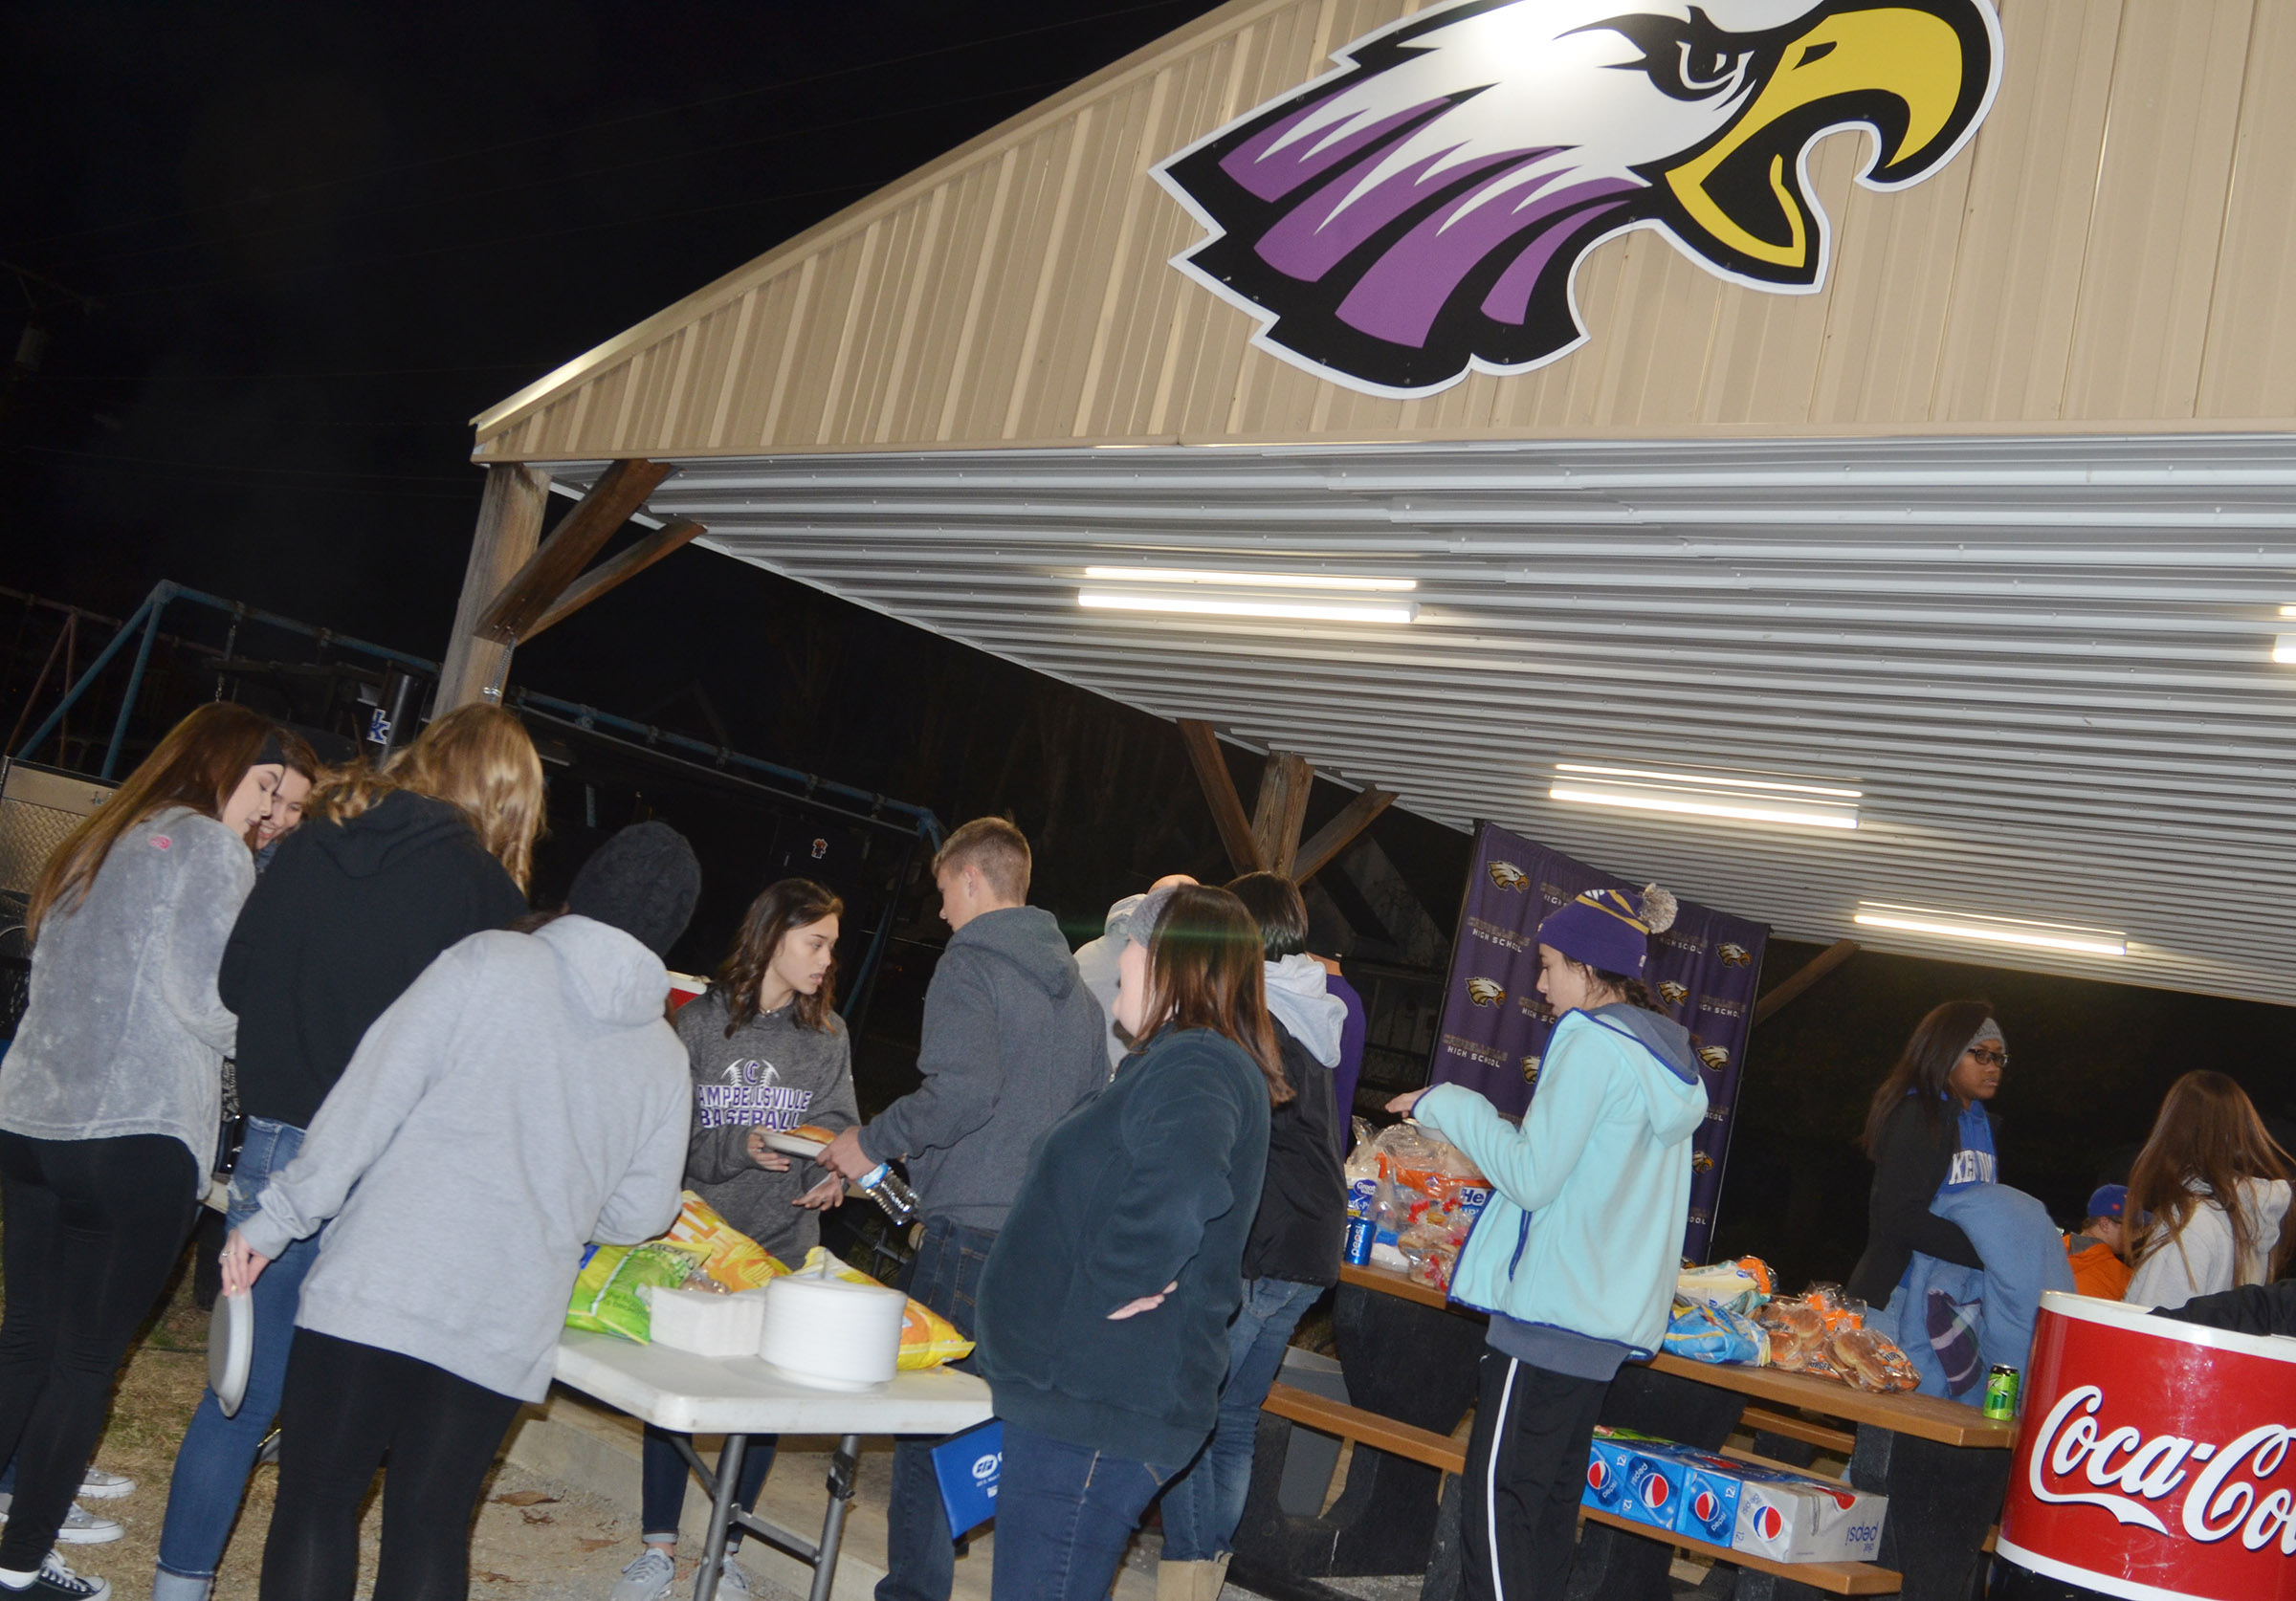 CHS hosted a tailgate before the game for students, staff members and fans.